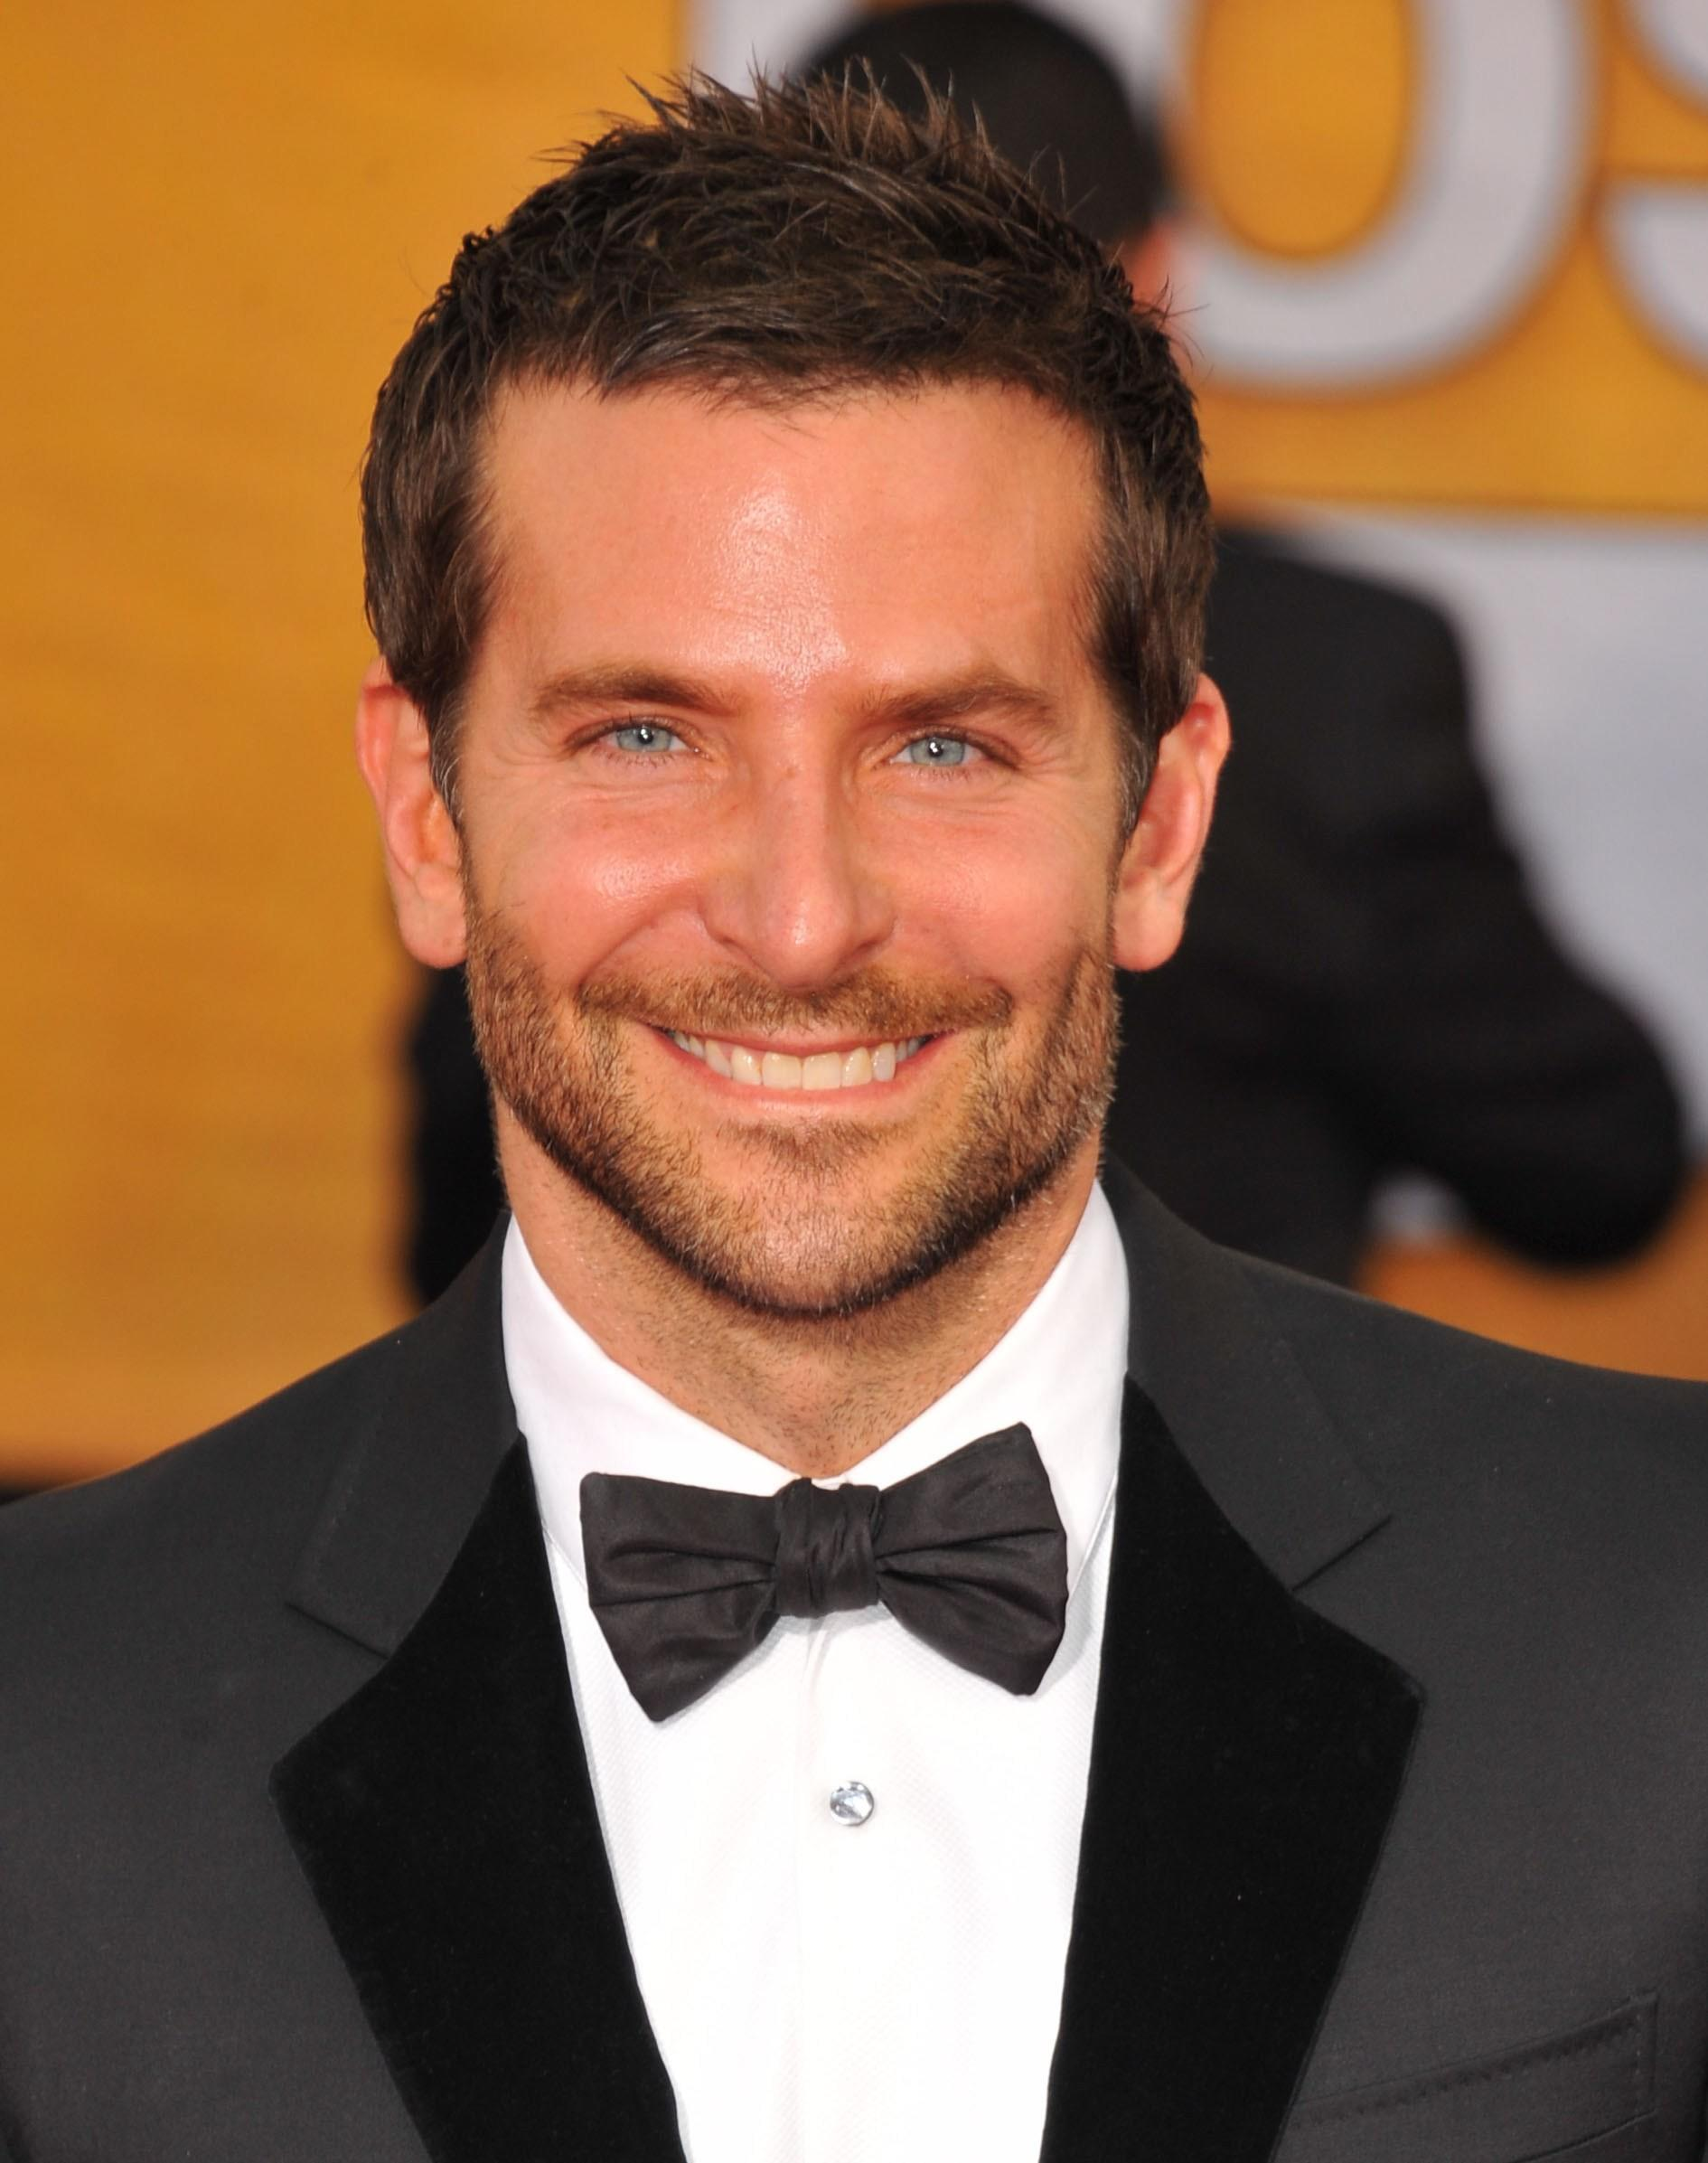 bradley cooper college Bradley cooper biography, news, photos, videos, movie reviews, music, footage he then attended villanova university before transferring to georgetown university.